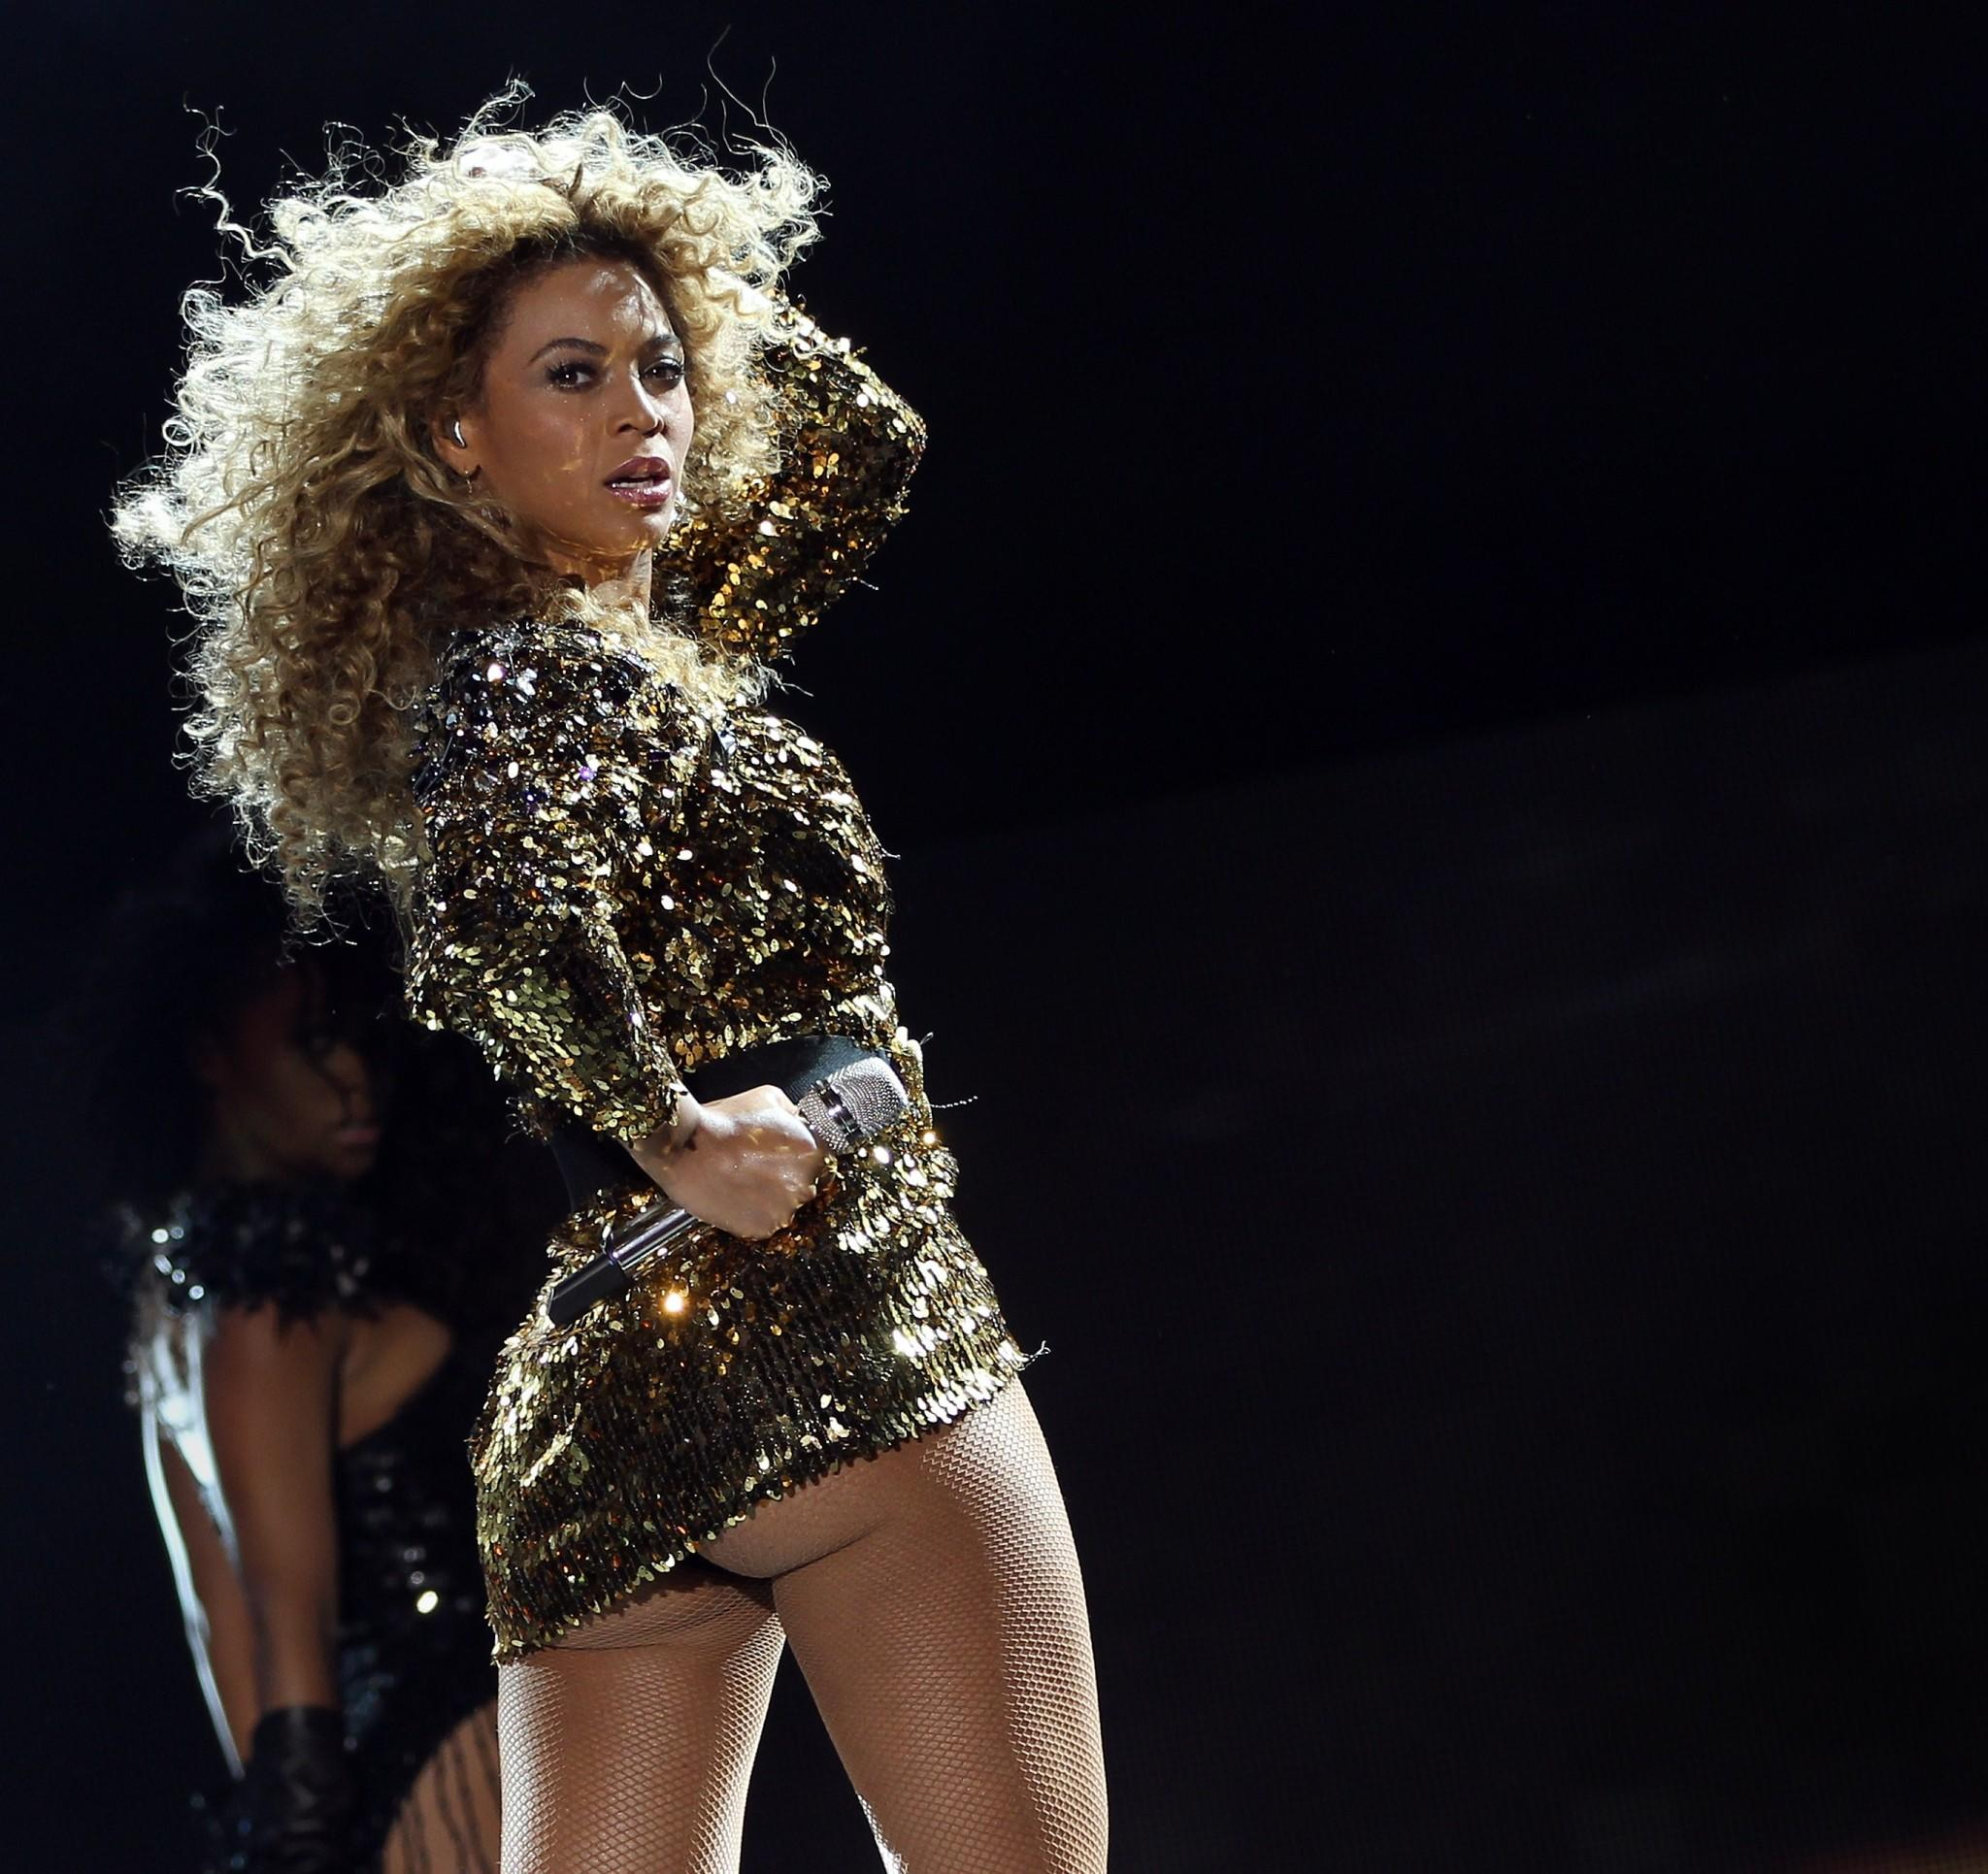 (FILES) A picture taken on June 26, 2011 shows US singer Beyonce performing on The Pyramid Stage during the last day of the Glastonbury festival near Glastonbury, Somerset. Beyonce has surprised fans and media alike by releasing an album titled Beyonce on December 13, 2013 on iTunes, the online music download site. AFP PHOTO / Adrian DennisADRIAN DENNIS/AFP/Getty Images ORG XMIT: